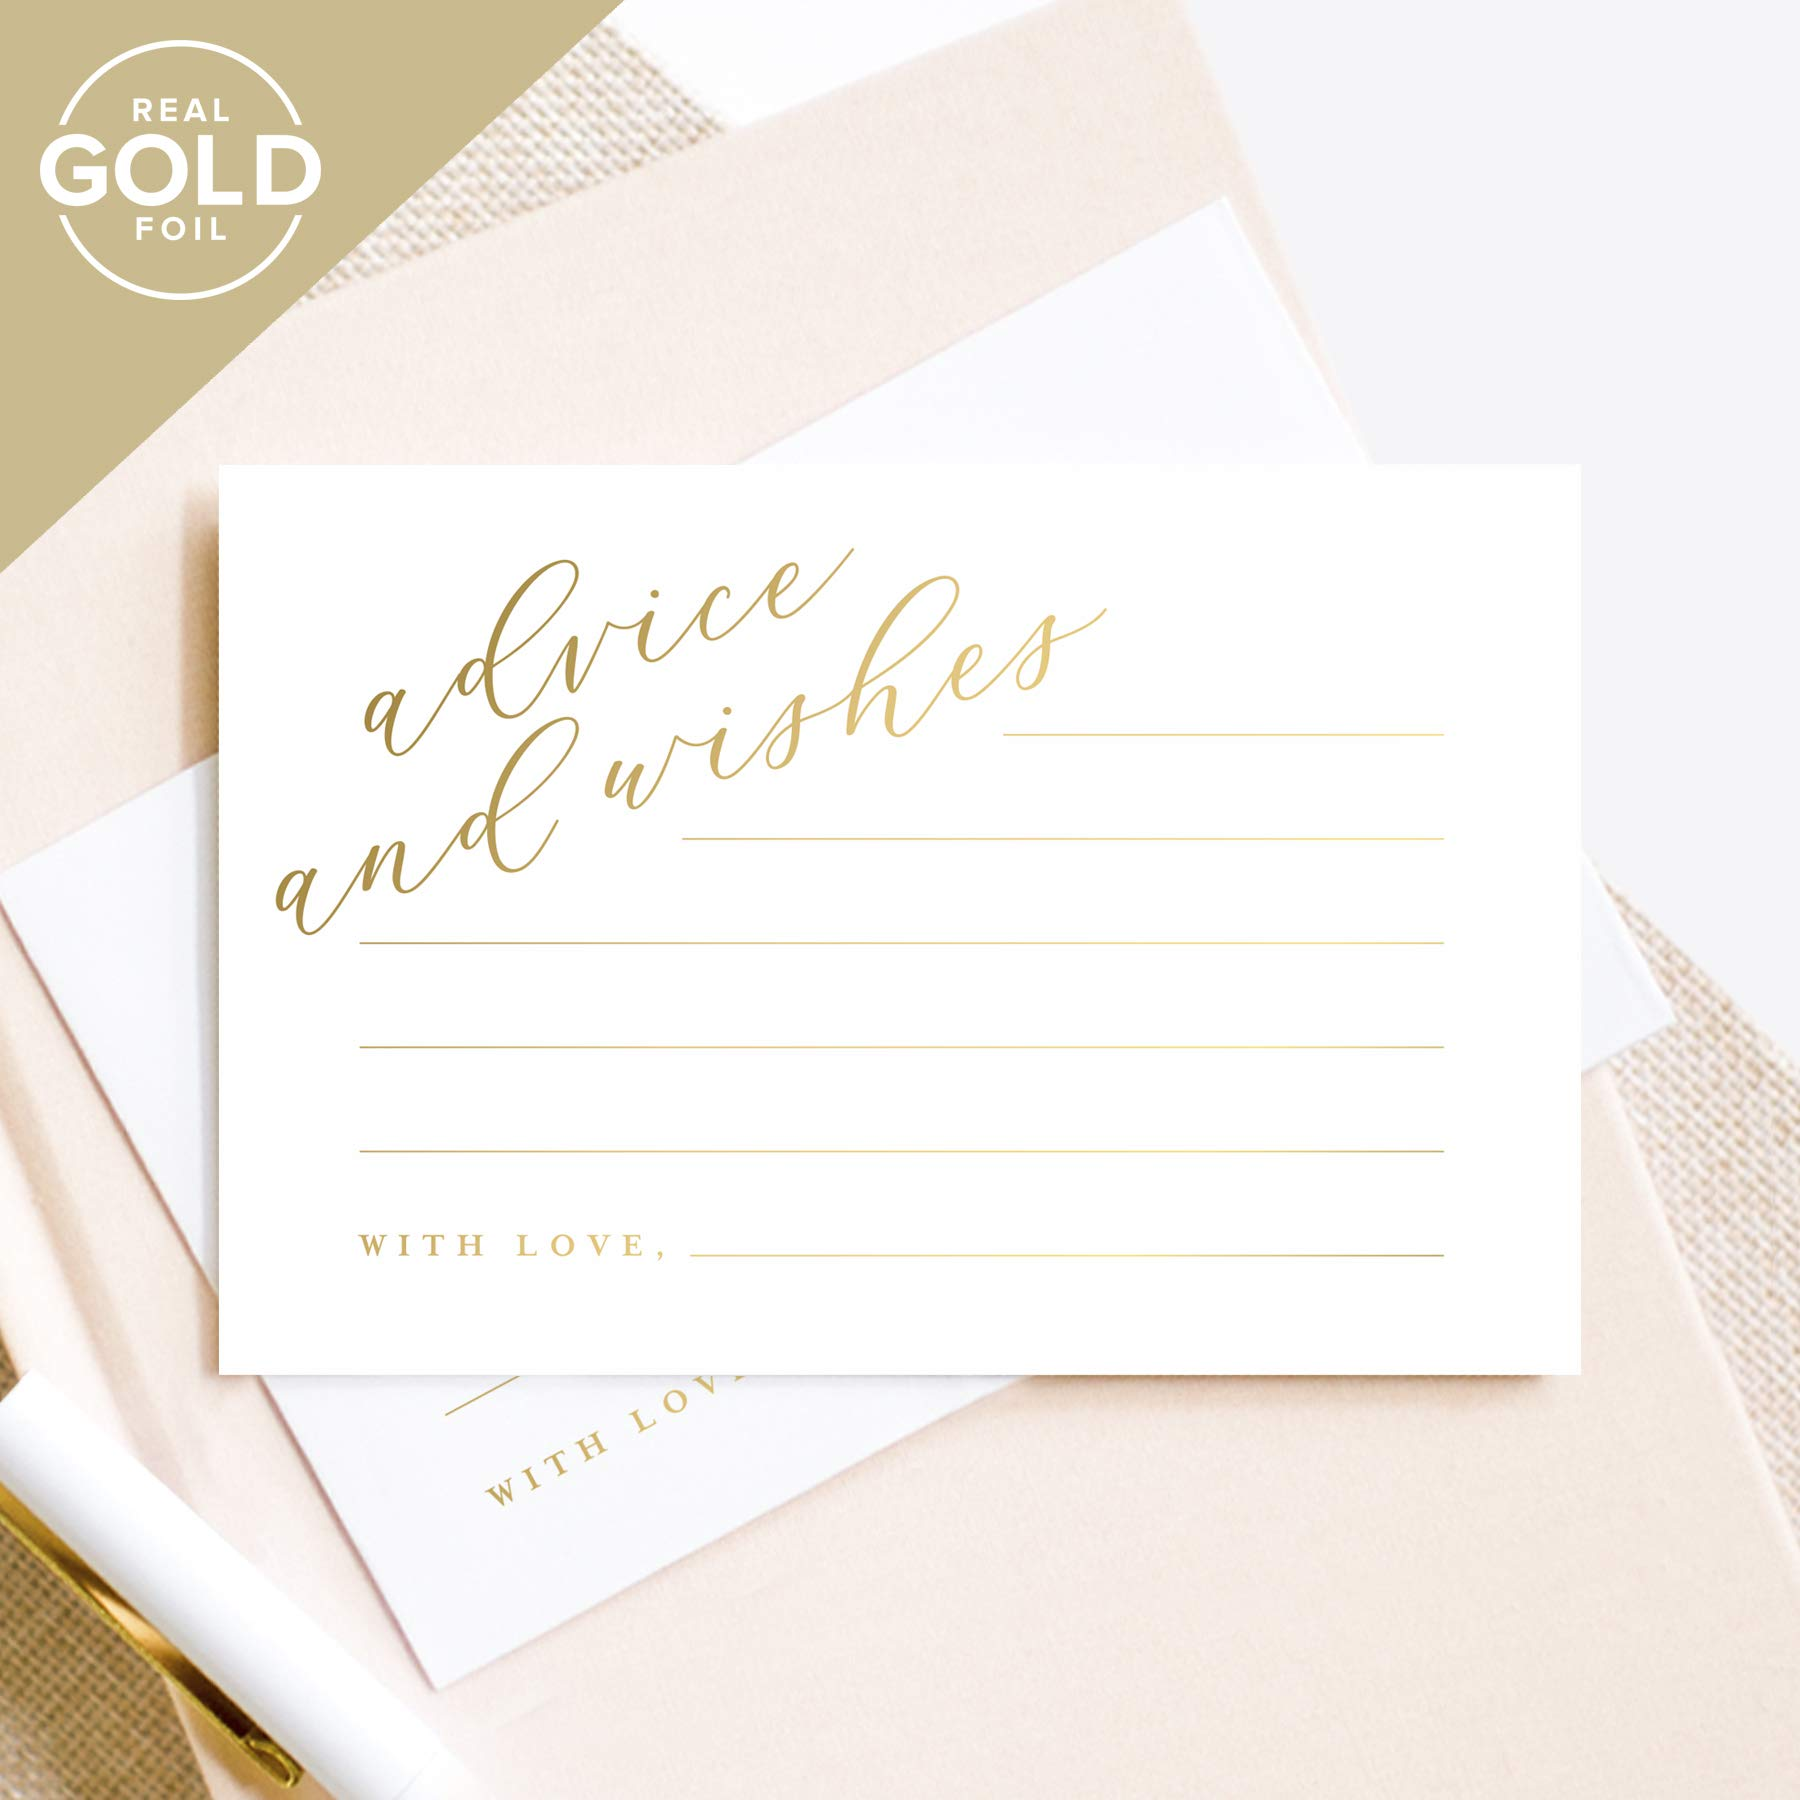 Gold Advice and Wishes Cards, Perfect for the Bride and Groom, Mr and Mrs, Baby Shower, Bridal Shower, Wedding, Graduation or special event - 50 Pack of 4x6 Cards from Bliss Paper Boutique